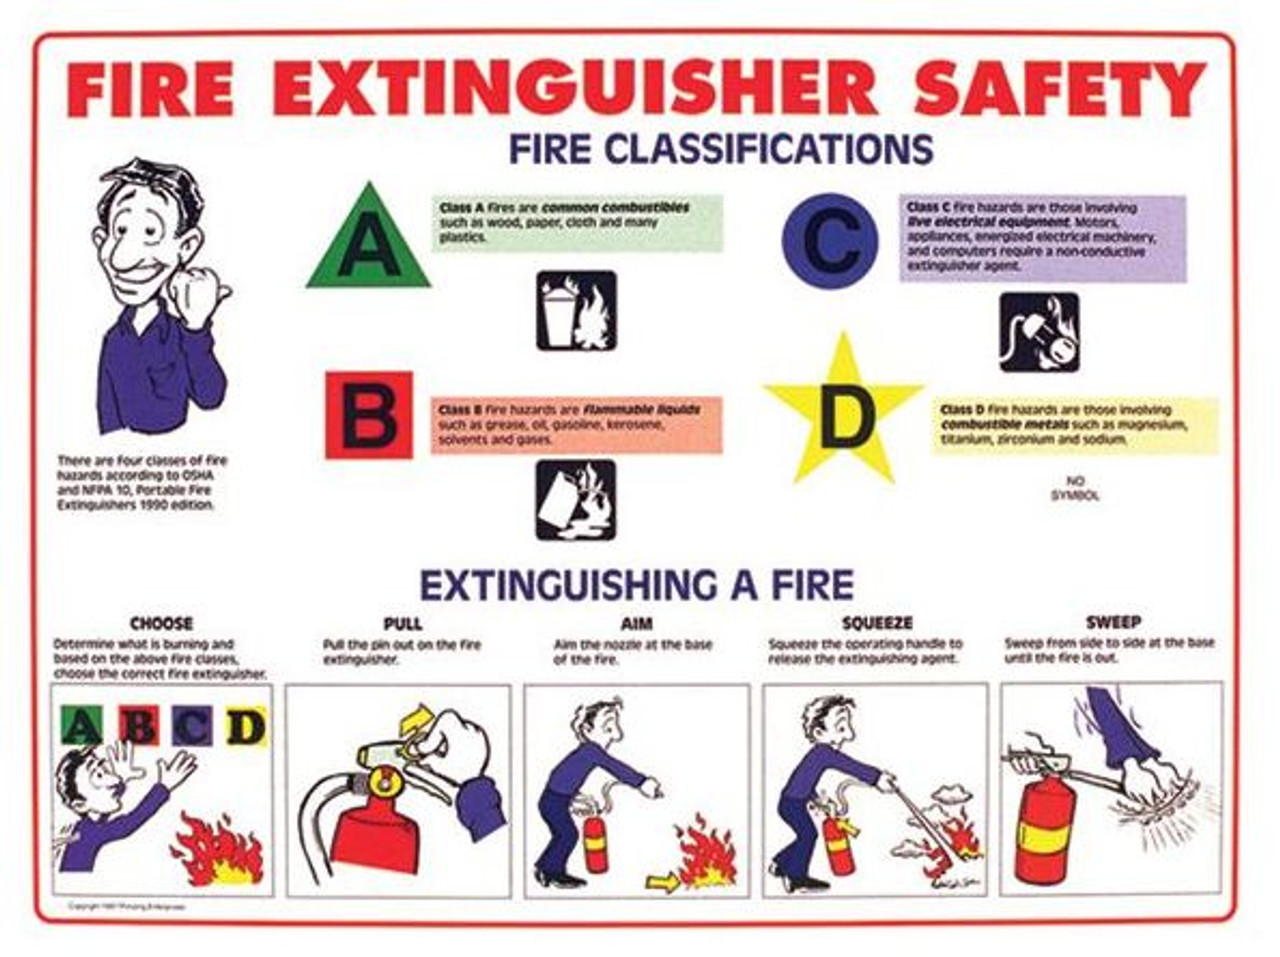 FEPOSTER - Fire Extinguisher Safety Poster